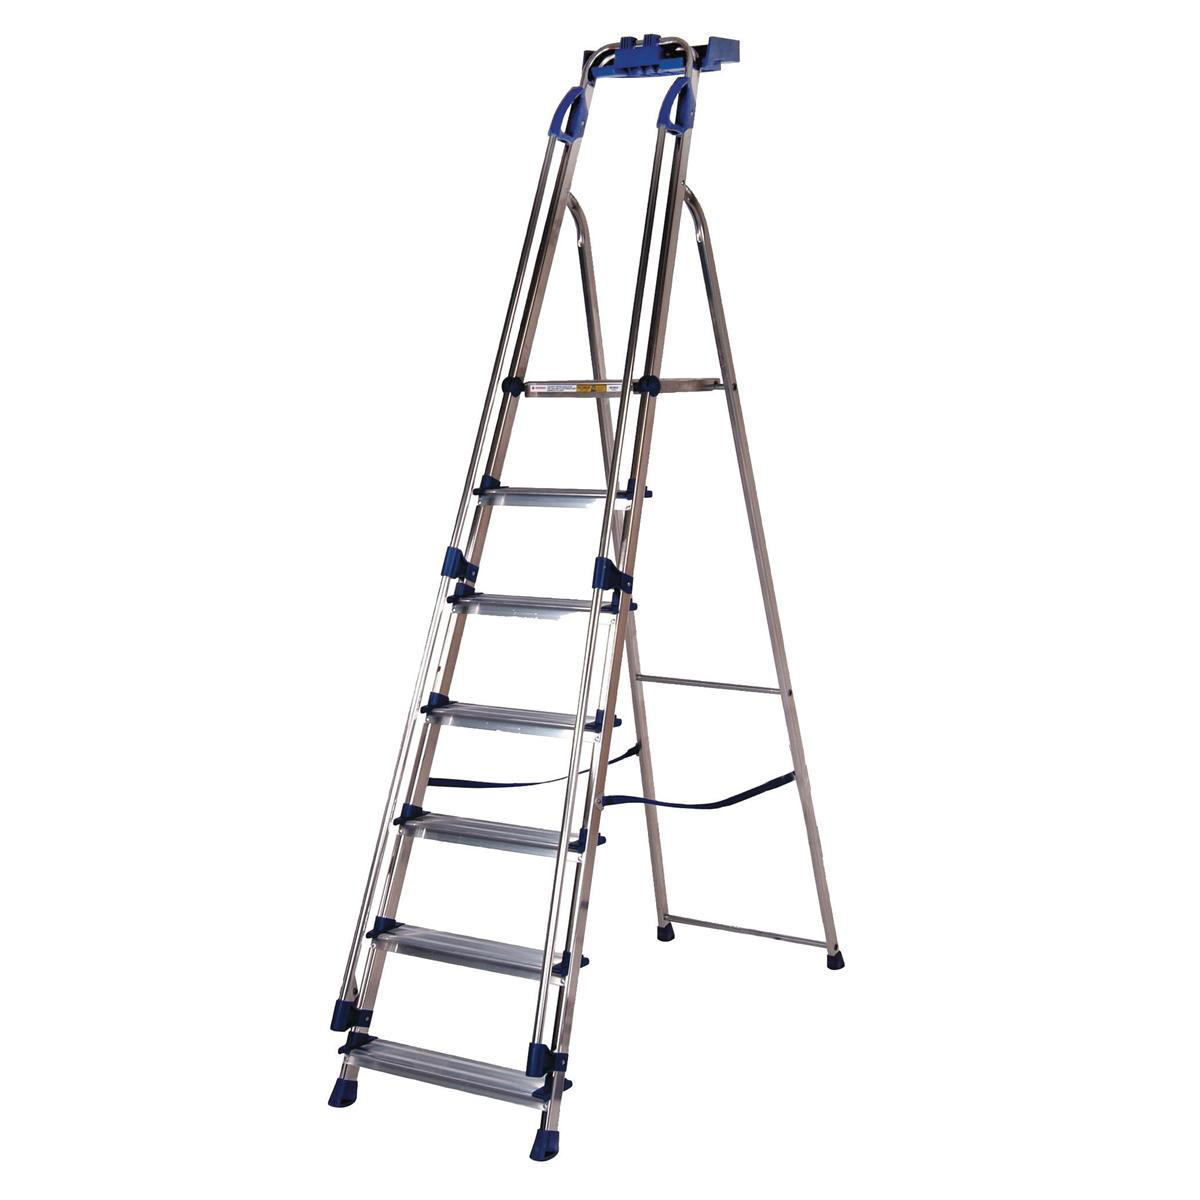 Steps Tradesman Platform Step Ladder 7 Steps Capacity 150kg Silver/Blue